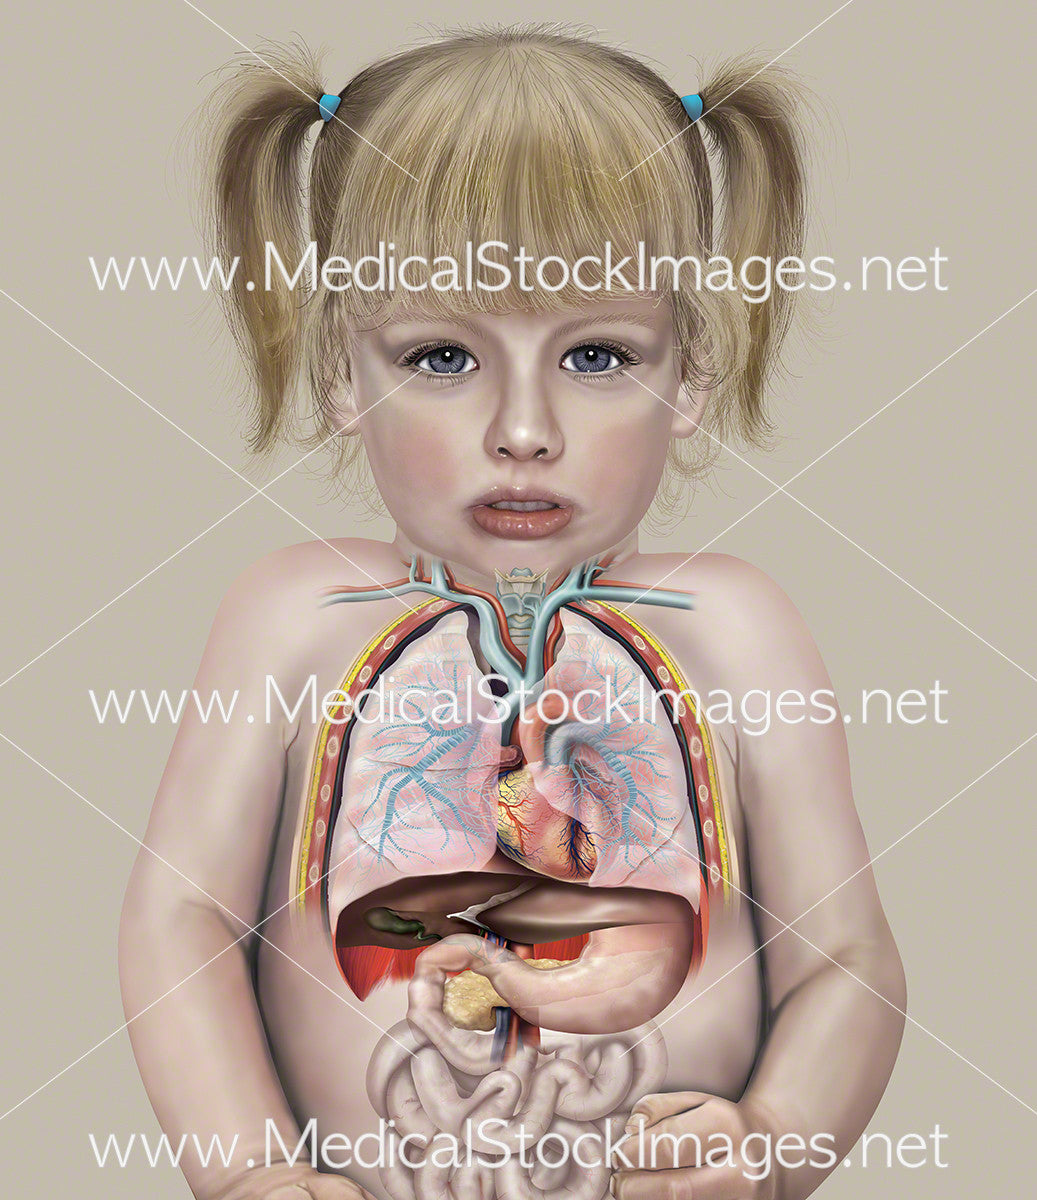 Chest and Abdominal Anatomy of a Child (2 years old) – Medical Stock ...